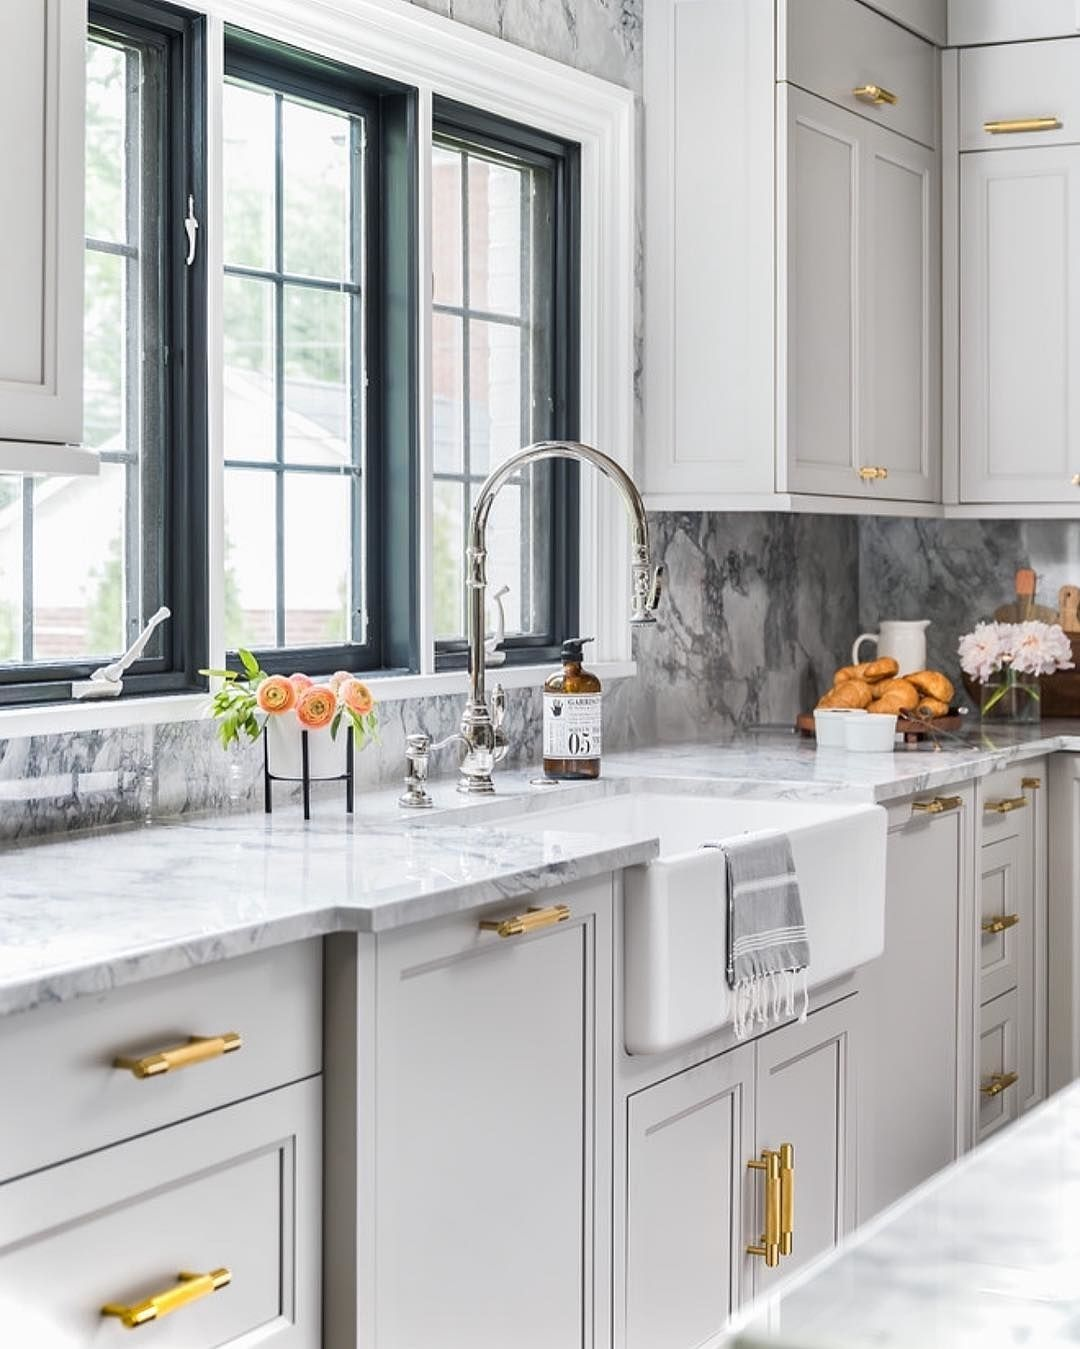 Hannah Rae On Instagram How Do You Feel About The Mix Of Light Grey And Gold In A Kitchen Love It Grey Shaker Kitchen Kitchen Renovation Light Grey Kitchens